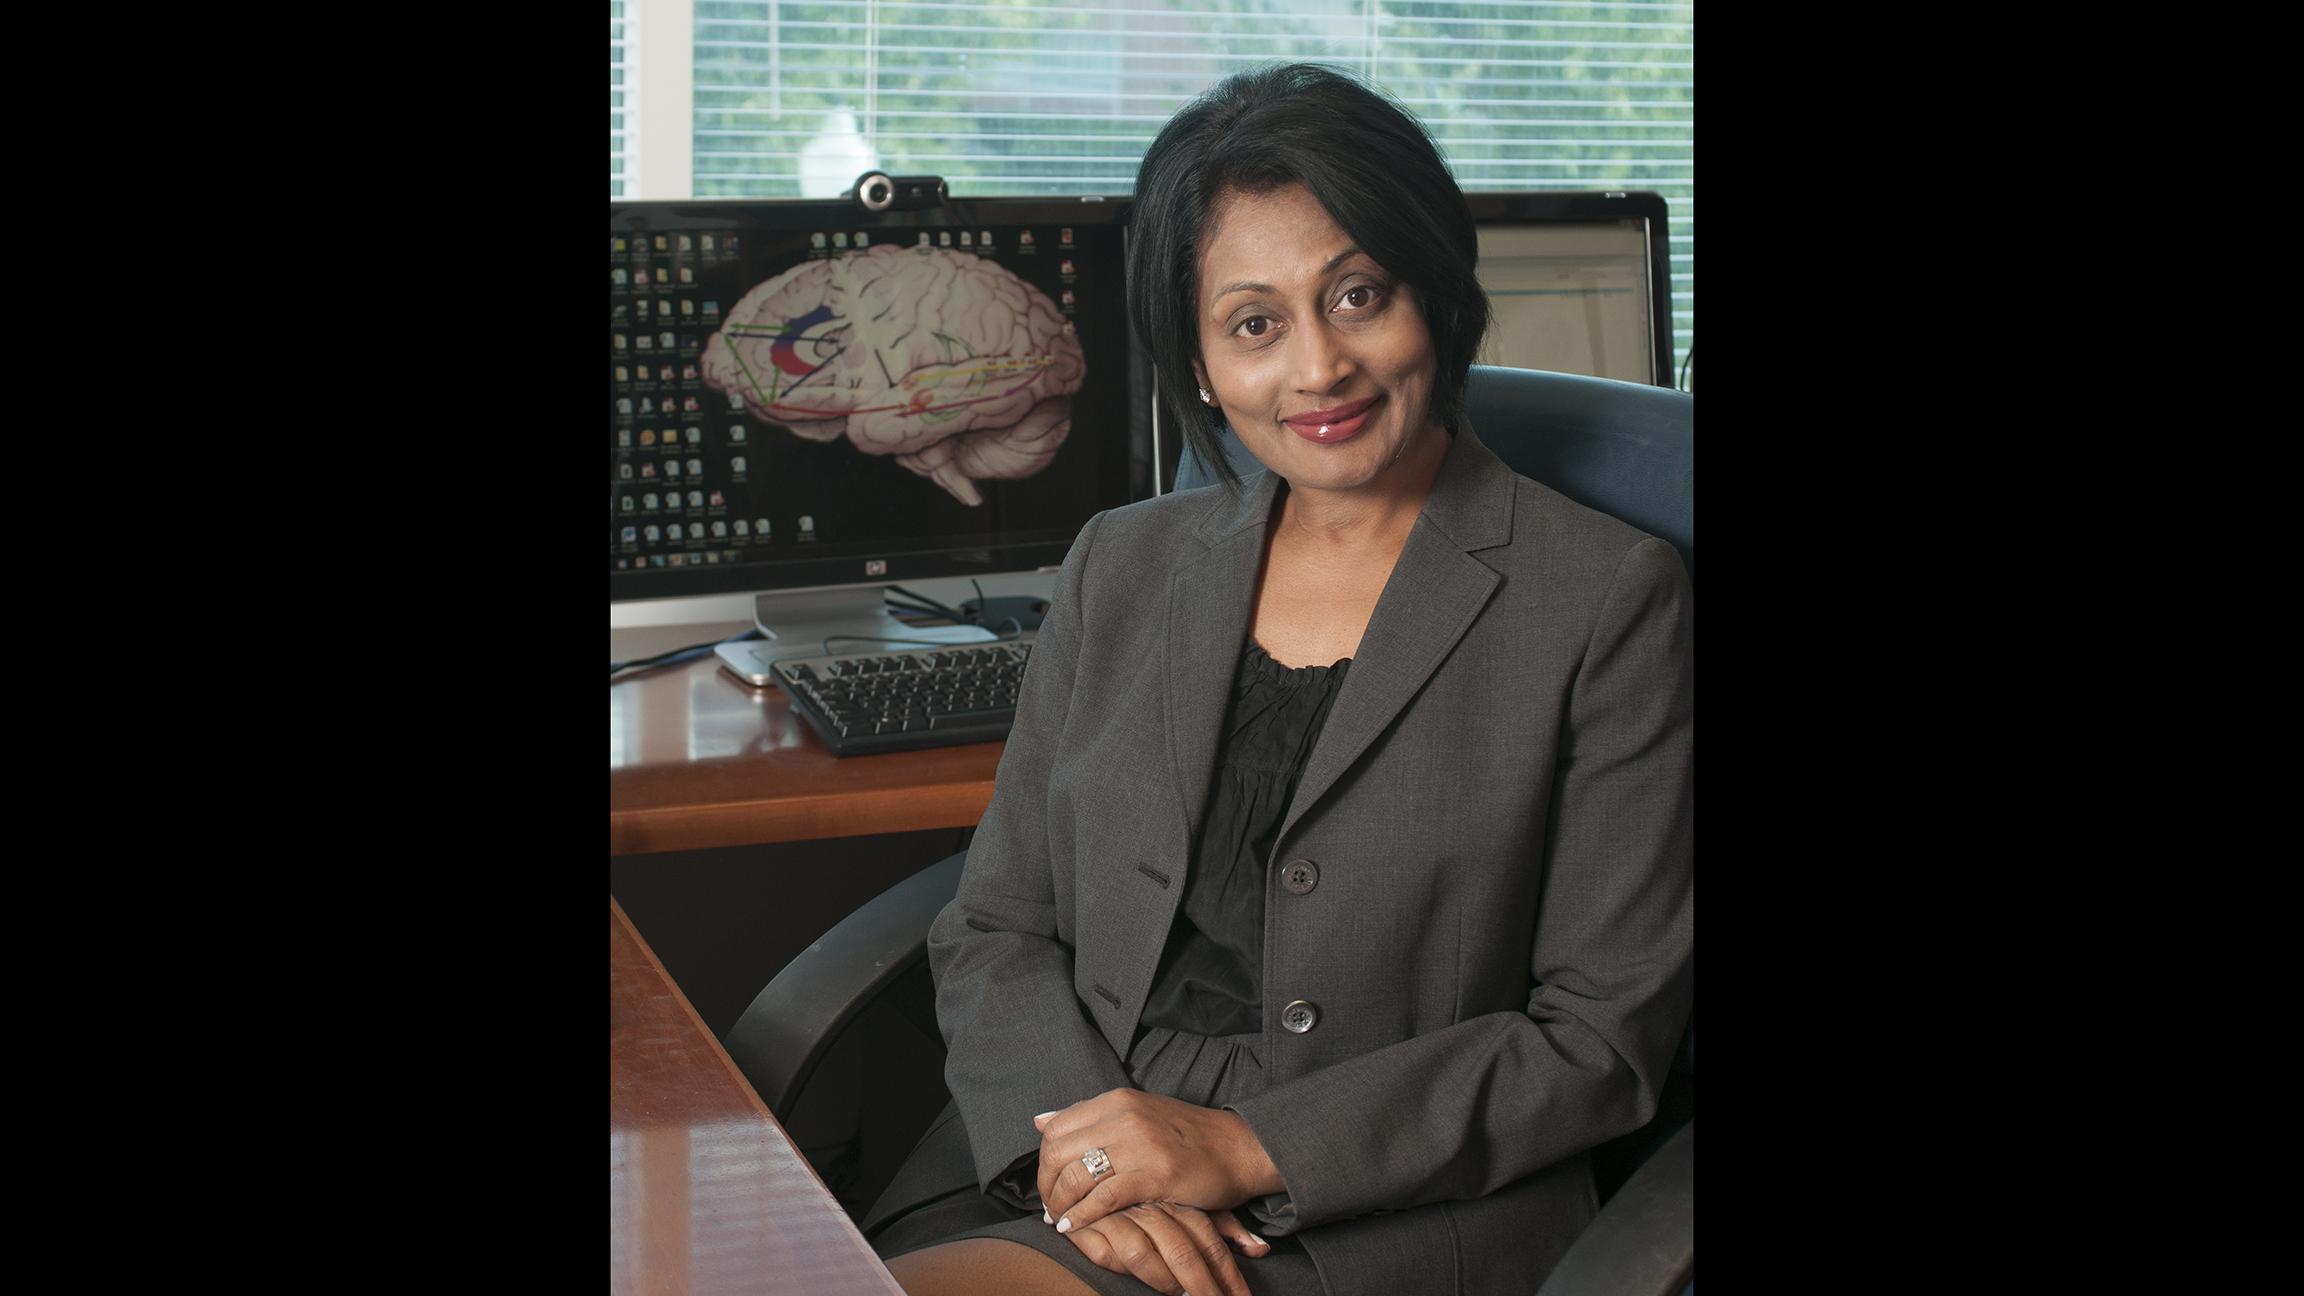 Dr. Mani Pavuluri (Courtesy of the University of Illinois at Chicago)